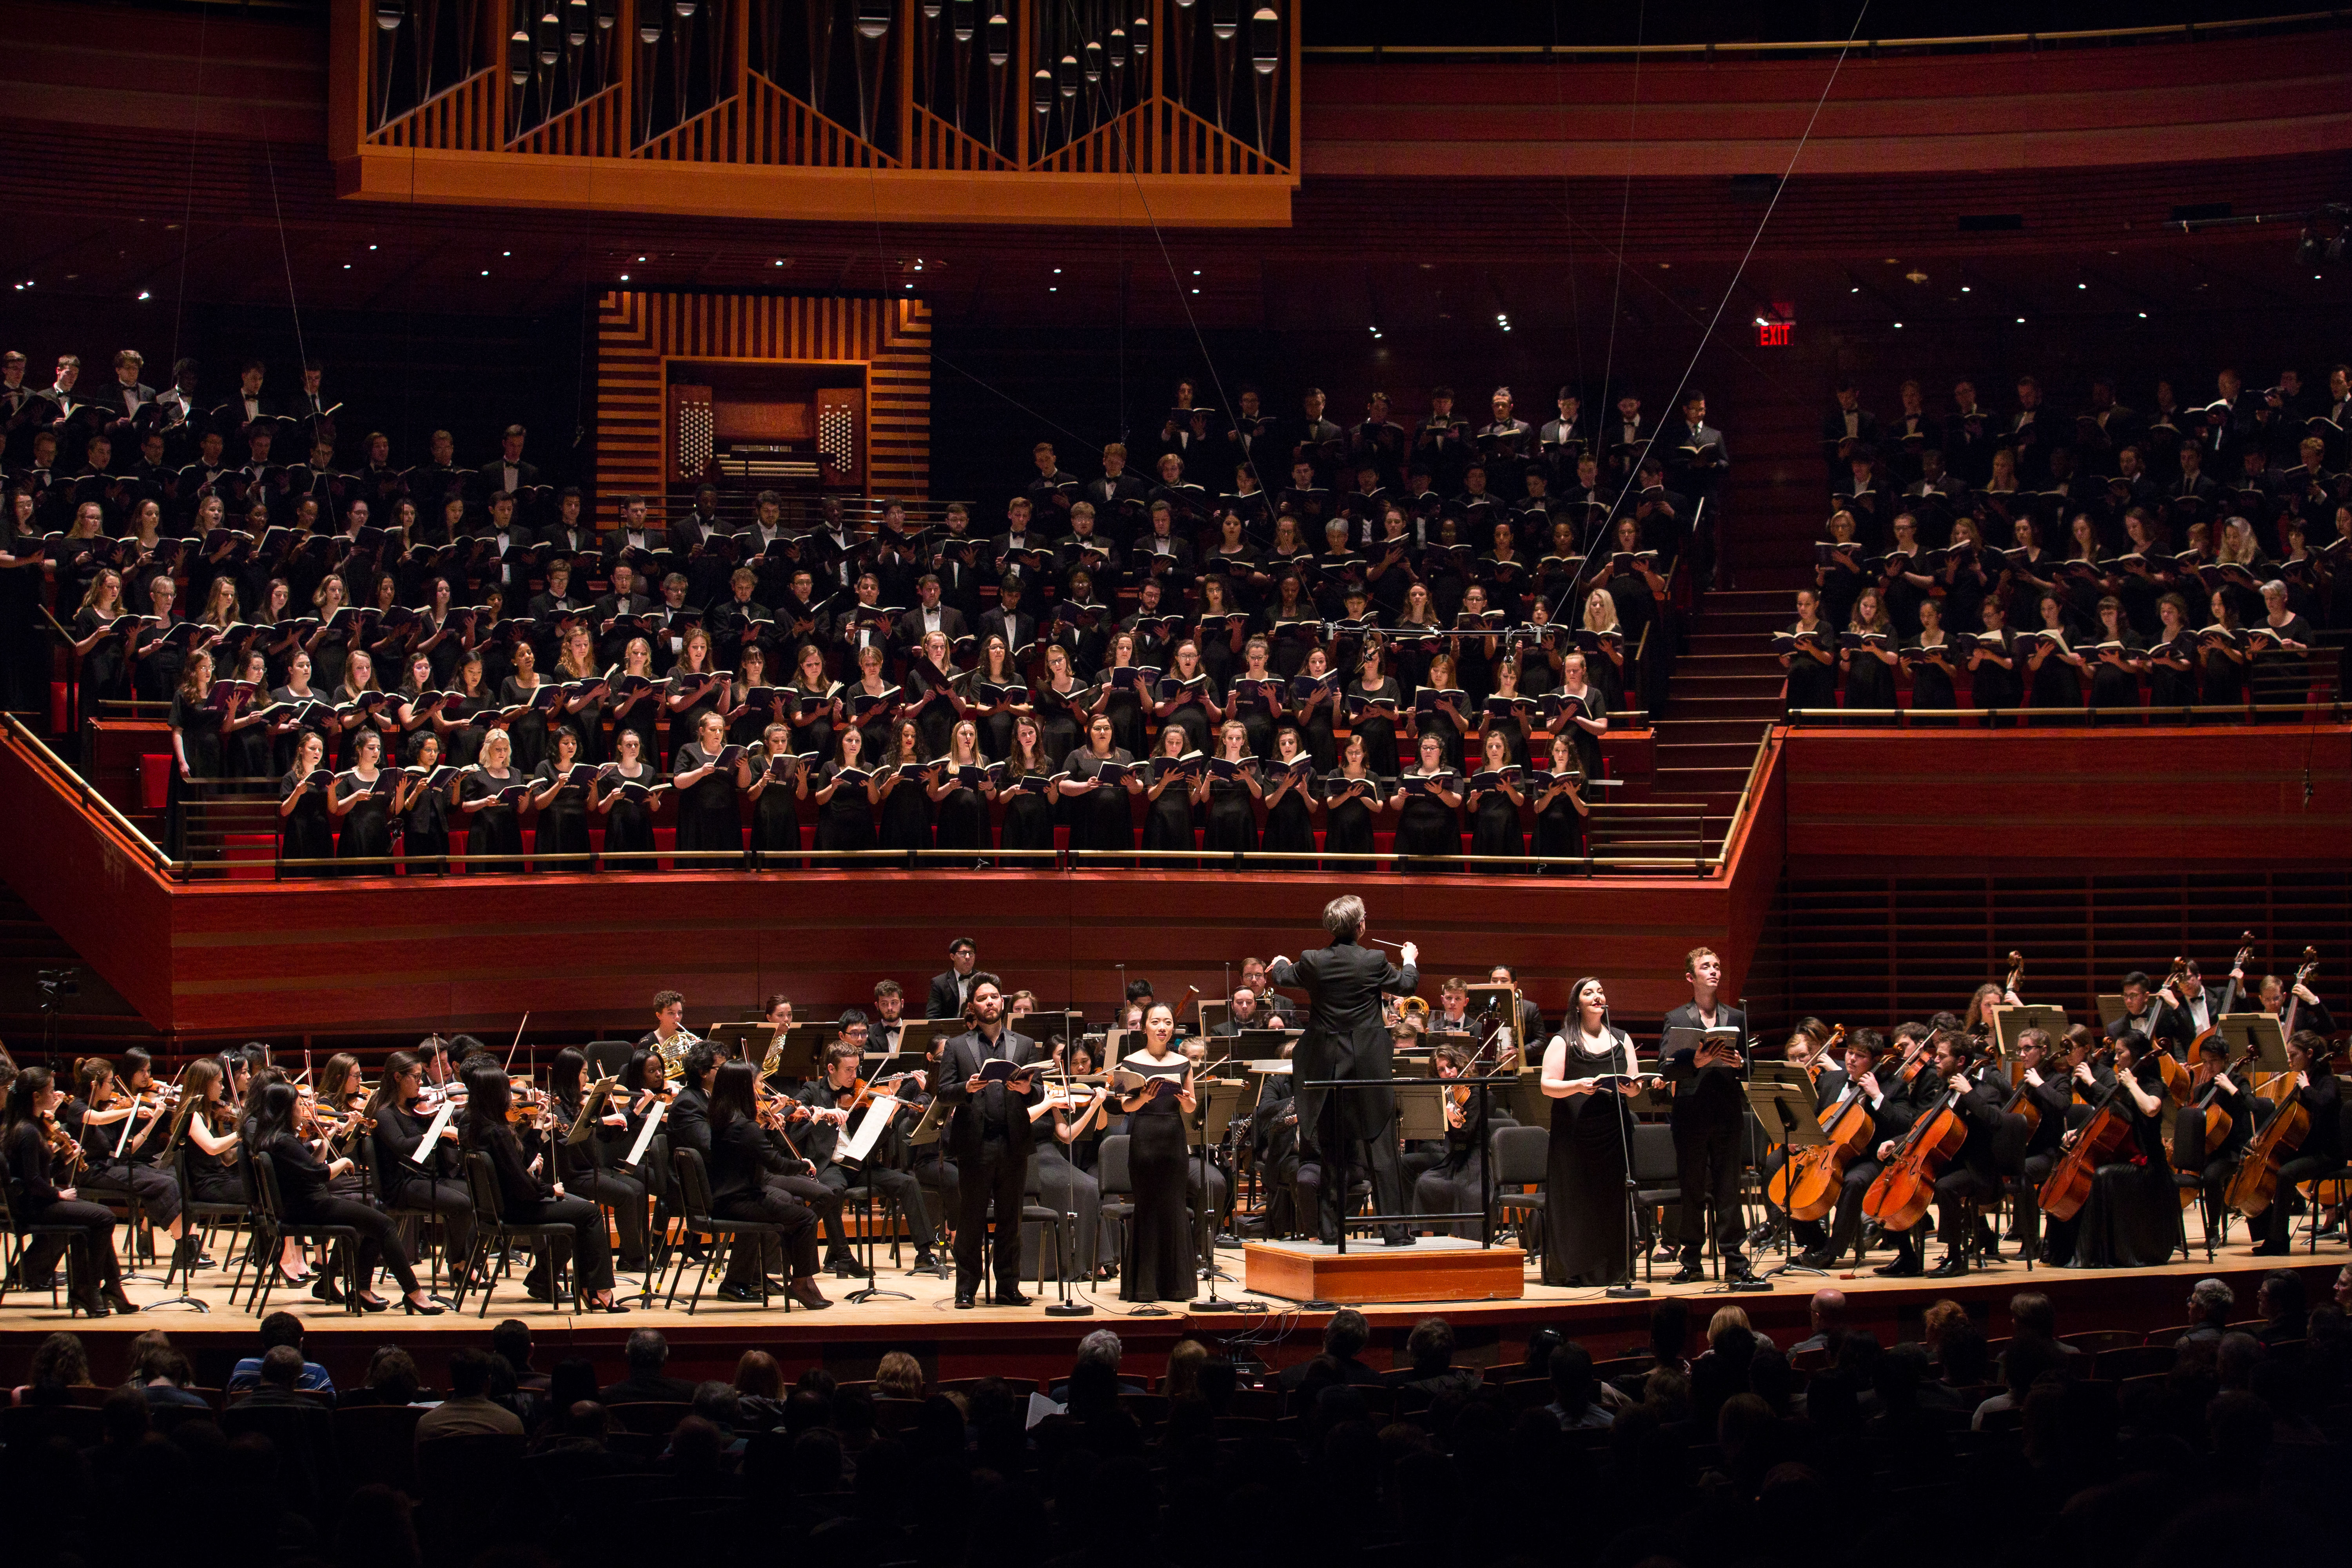 Choir and orchestra members on stage at the Kimmel Center for the Performing Arts, conducted by Paul Rardin.